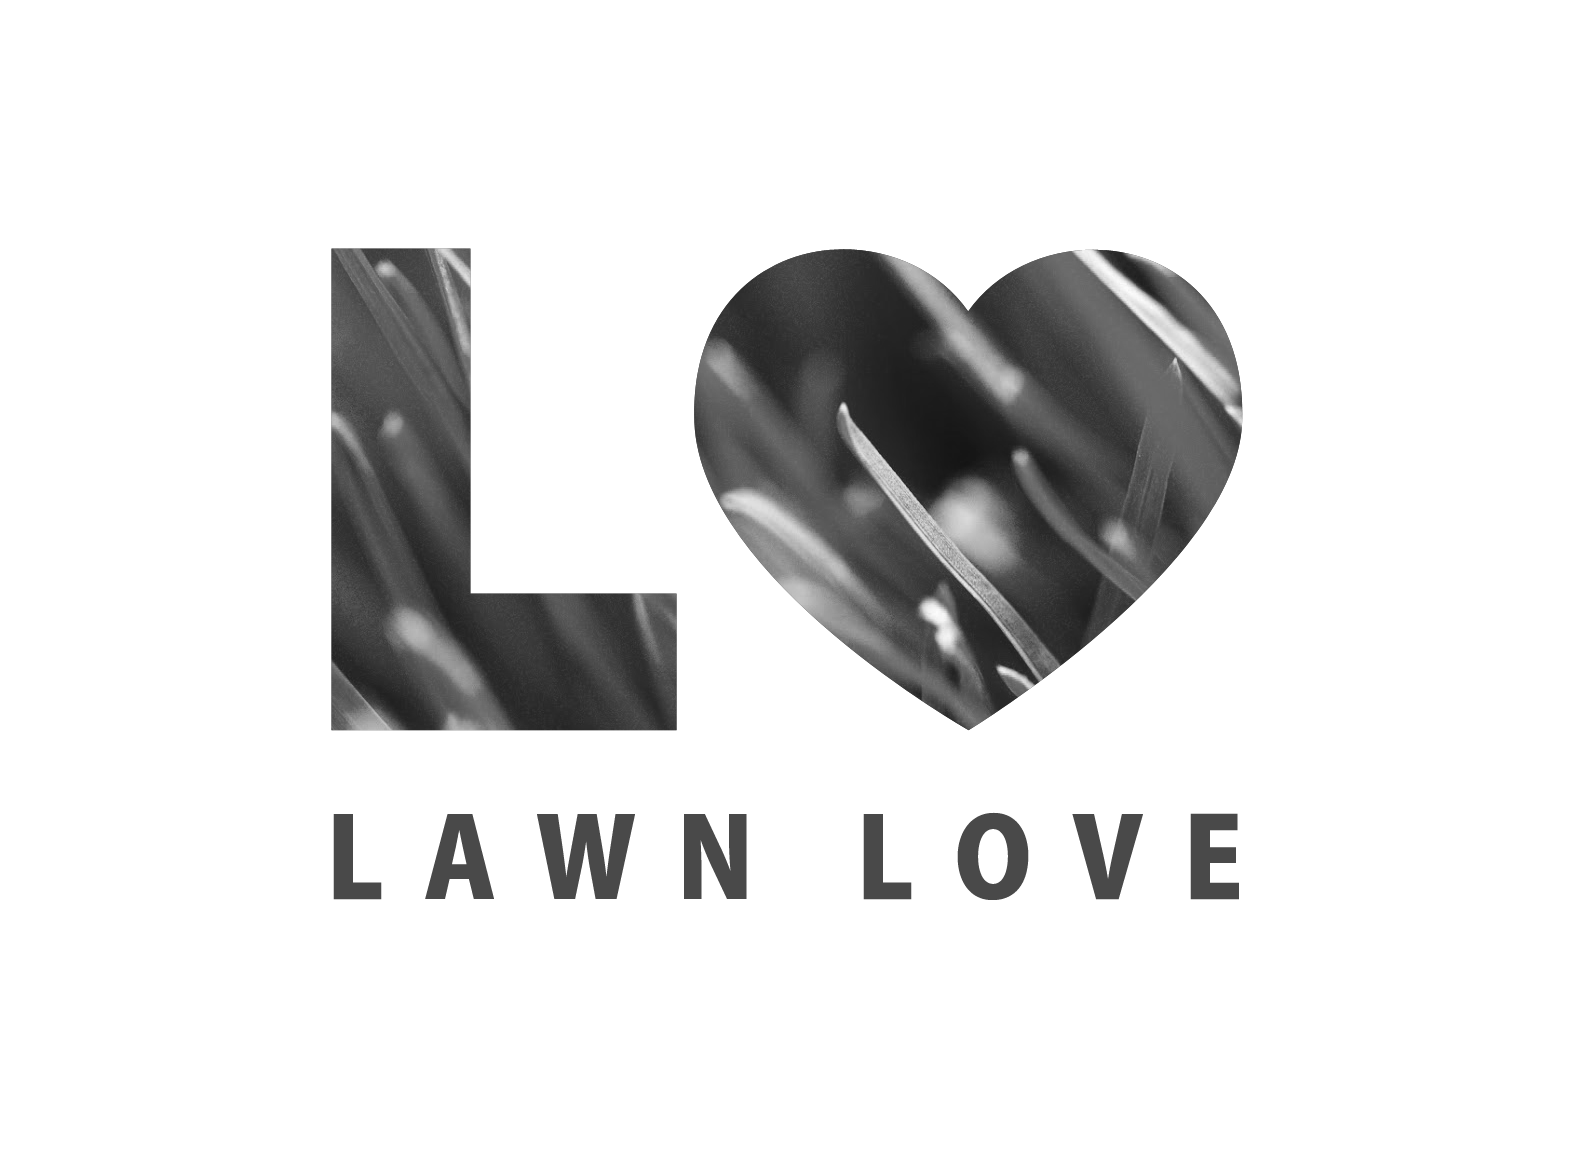 Click here to visit lawnlove.com